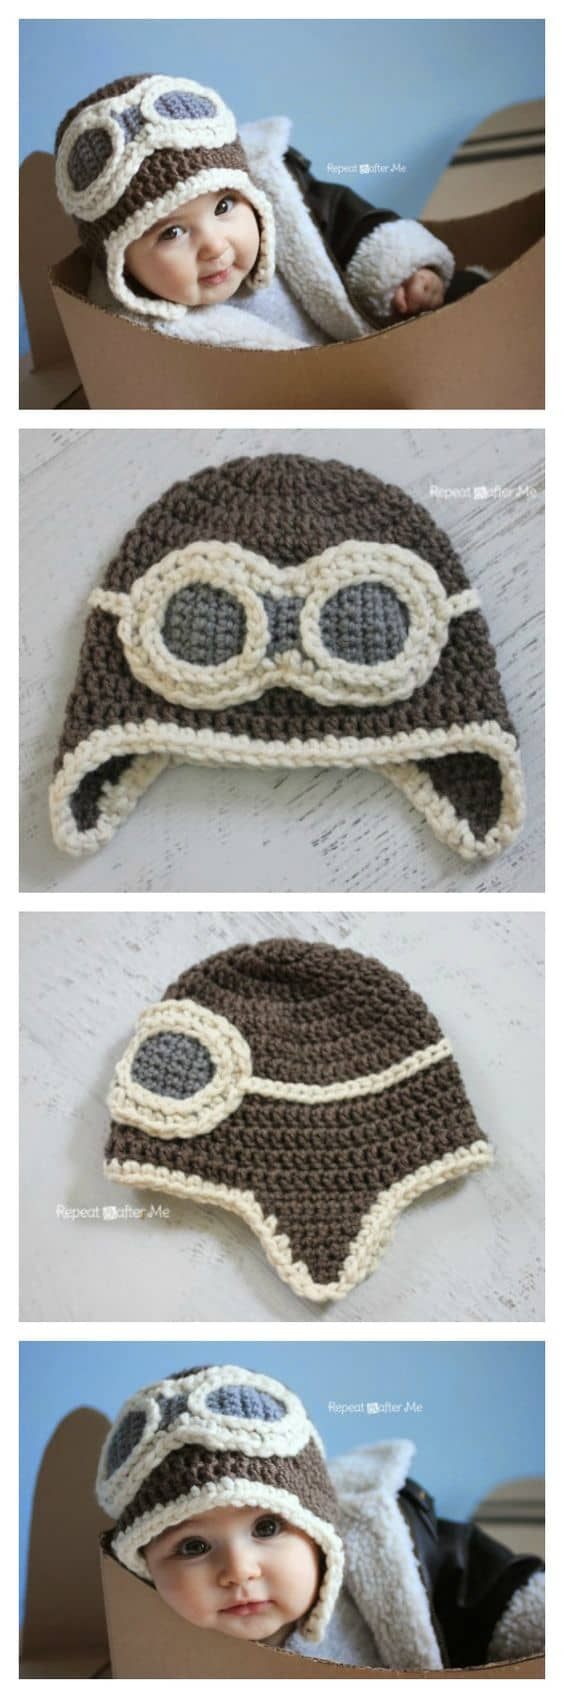 Crochet Aviator Hat Youtube Video